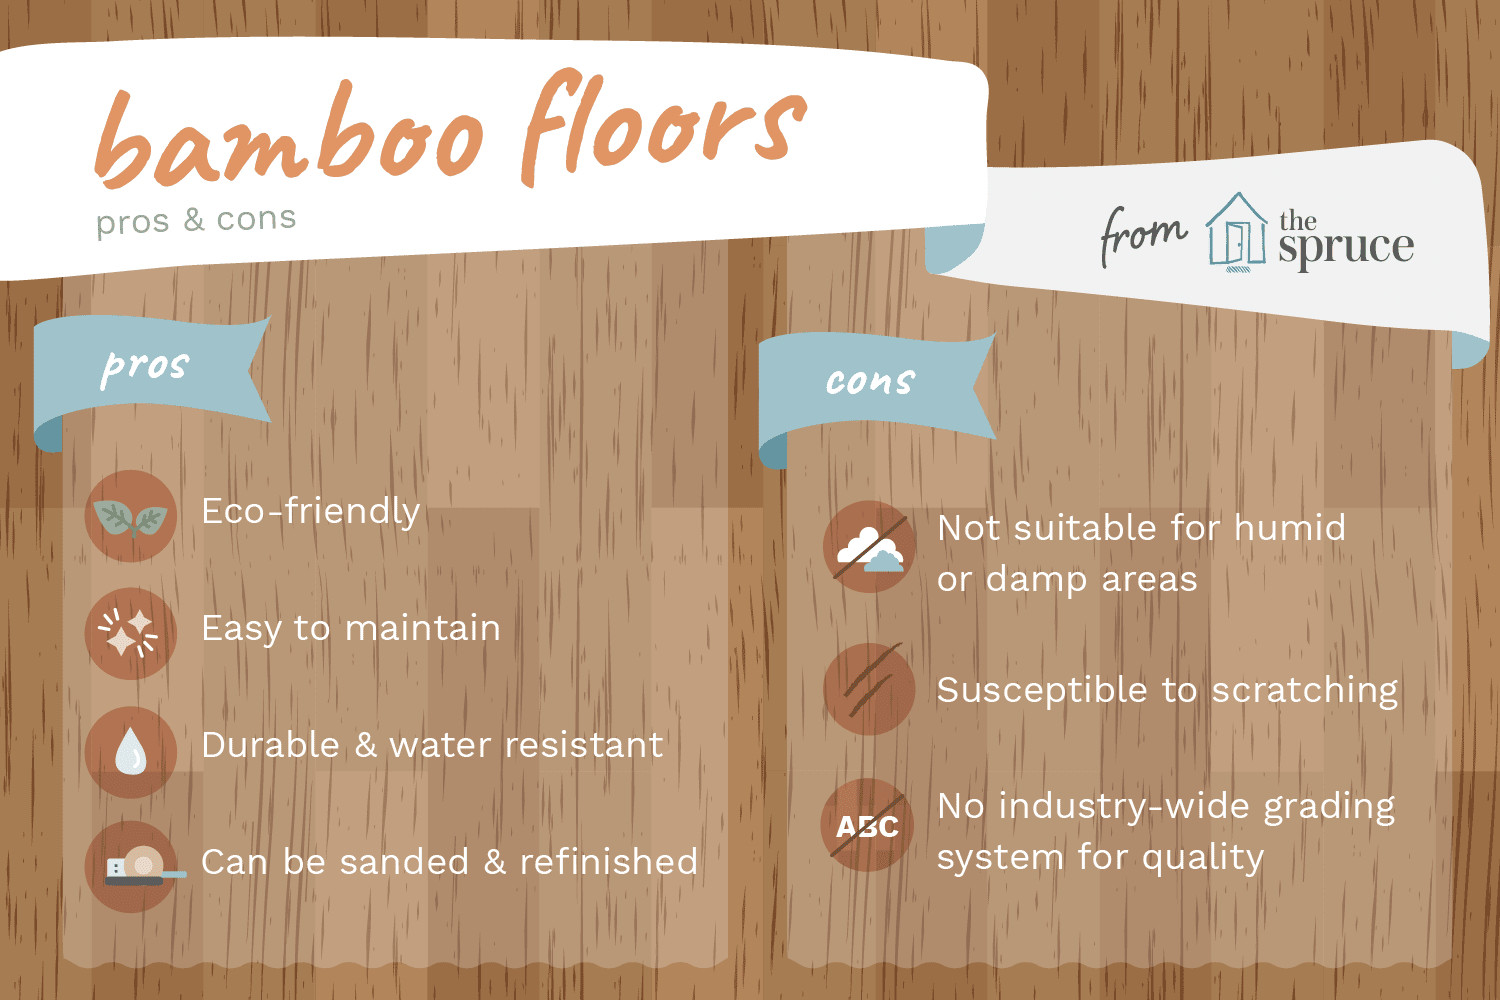 how much does it cost to refinish hardwood floors canada of the advantages and disadvantages of bamboo flooring intended for benefits and drawbacks of bamboo floors 1314694 v3 5b102fccff1b780036c0a4fa